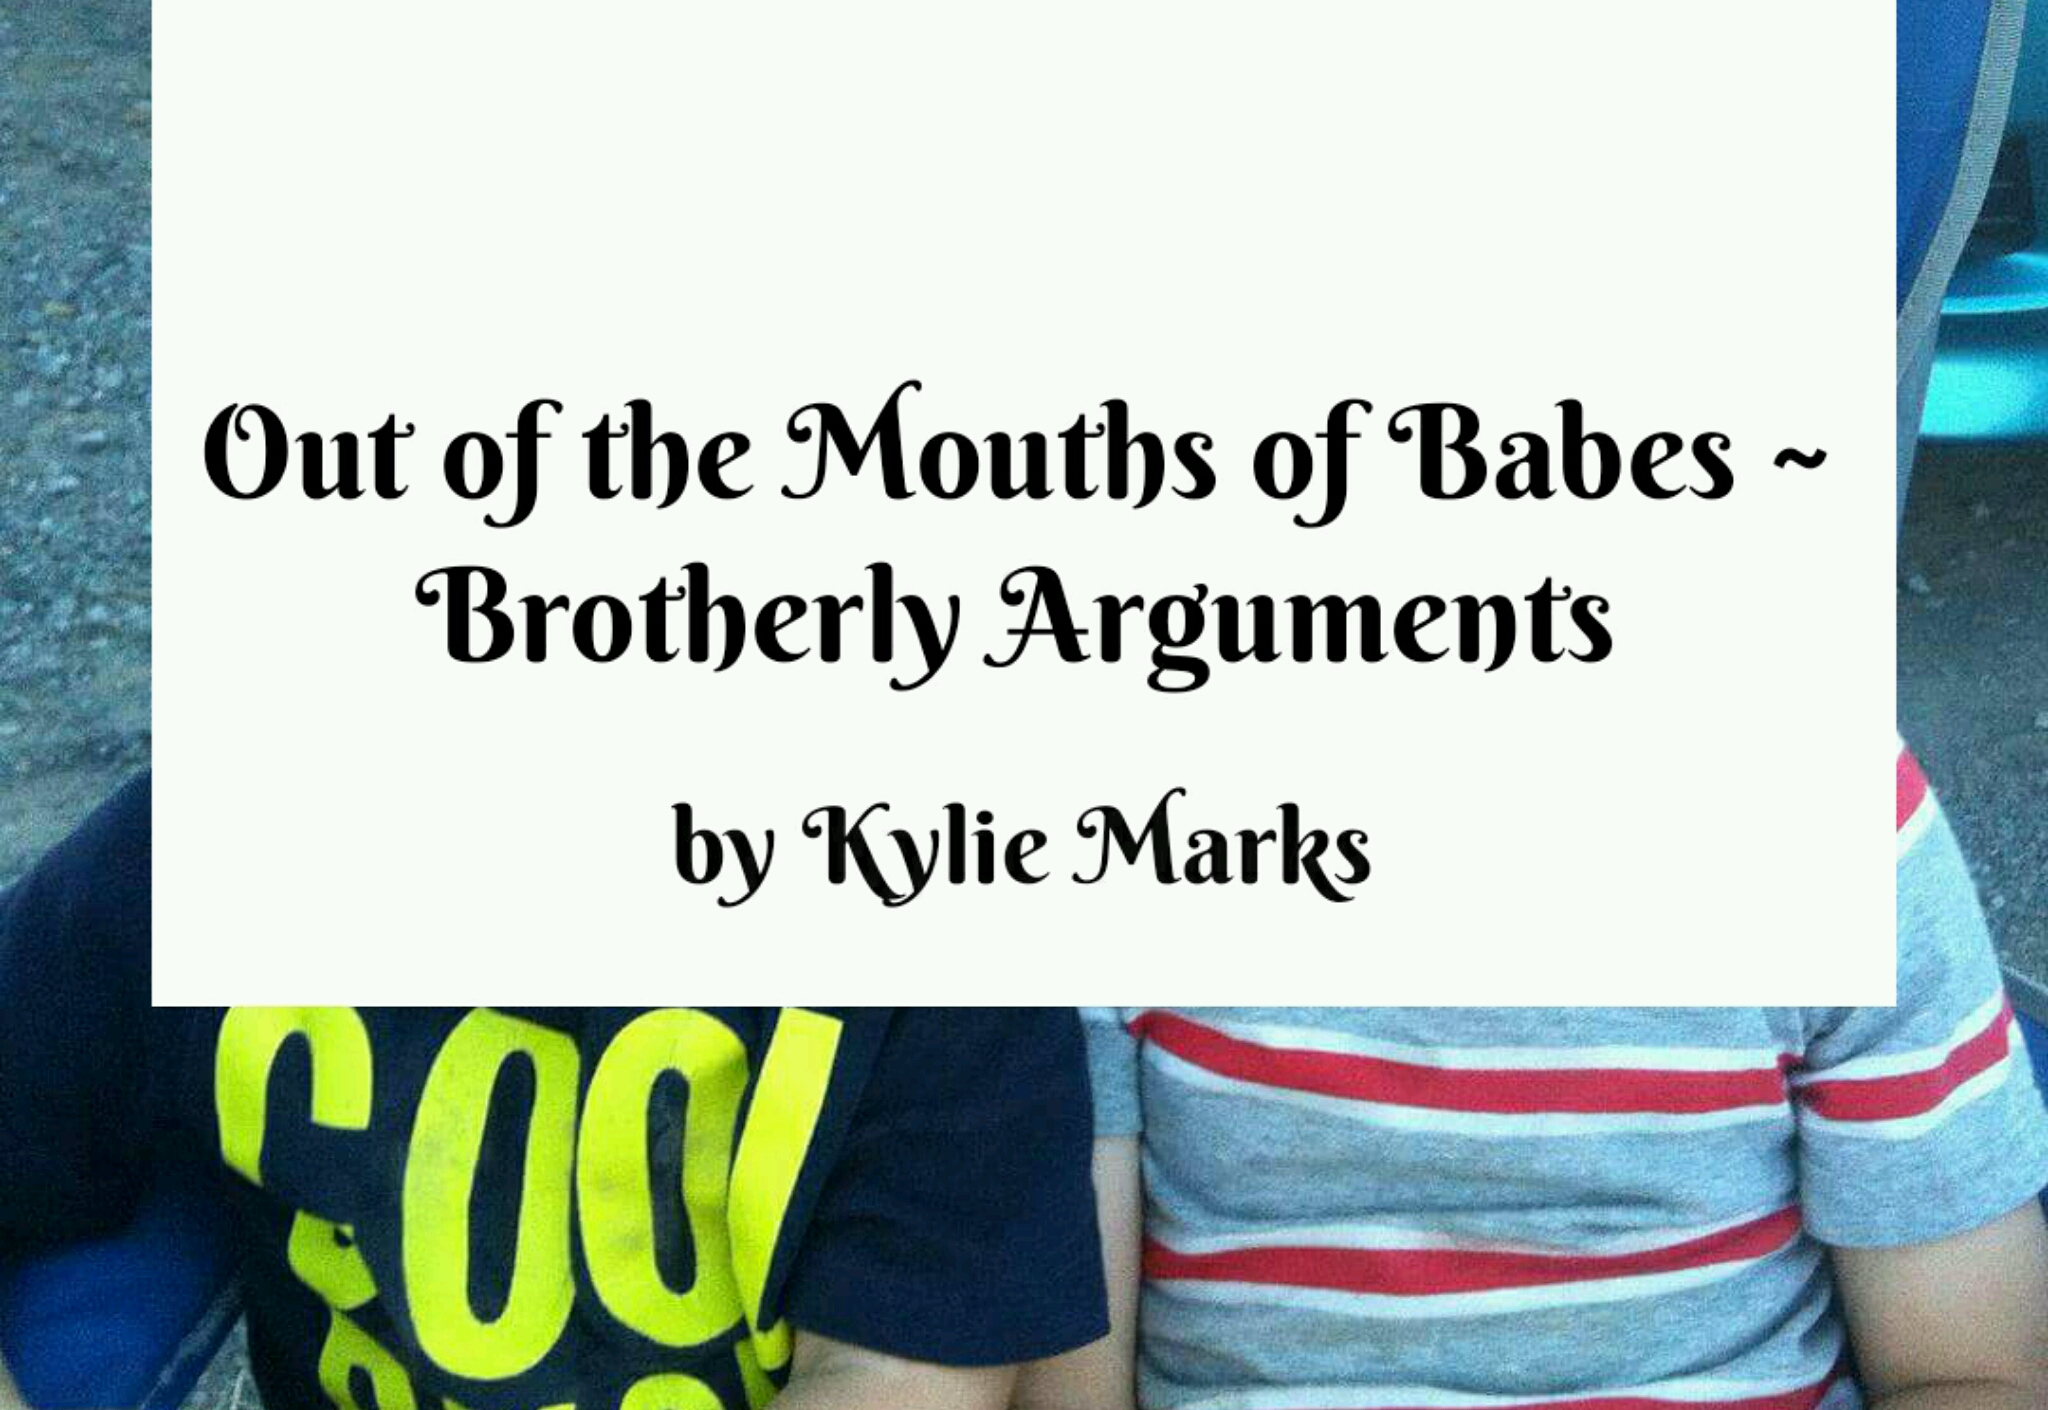 Out of the Mouths of Babes ~ Brotherly Arguments